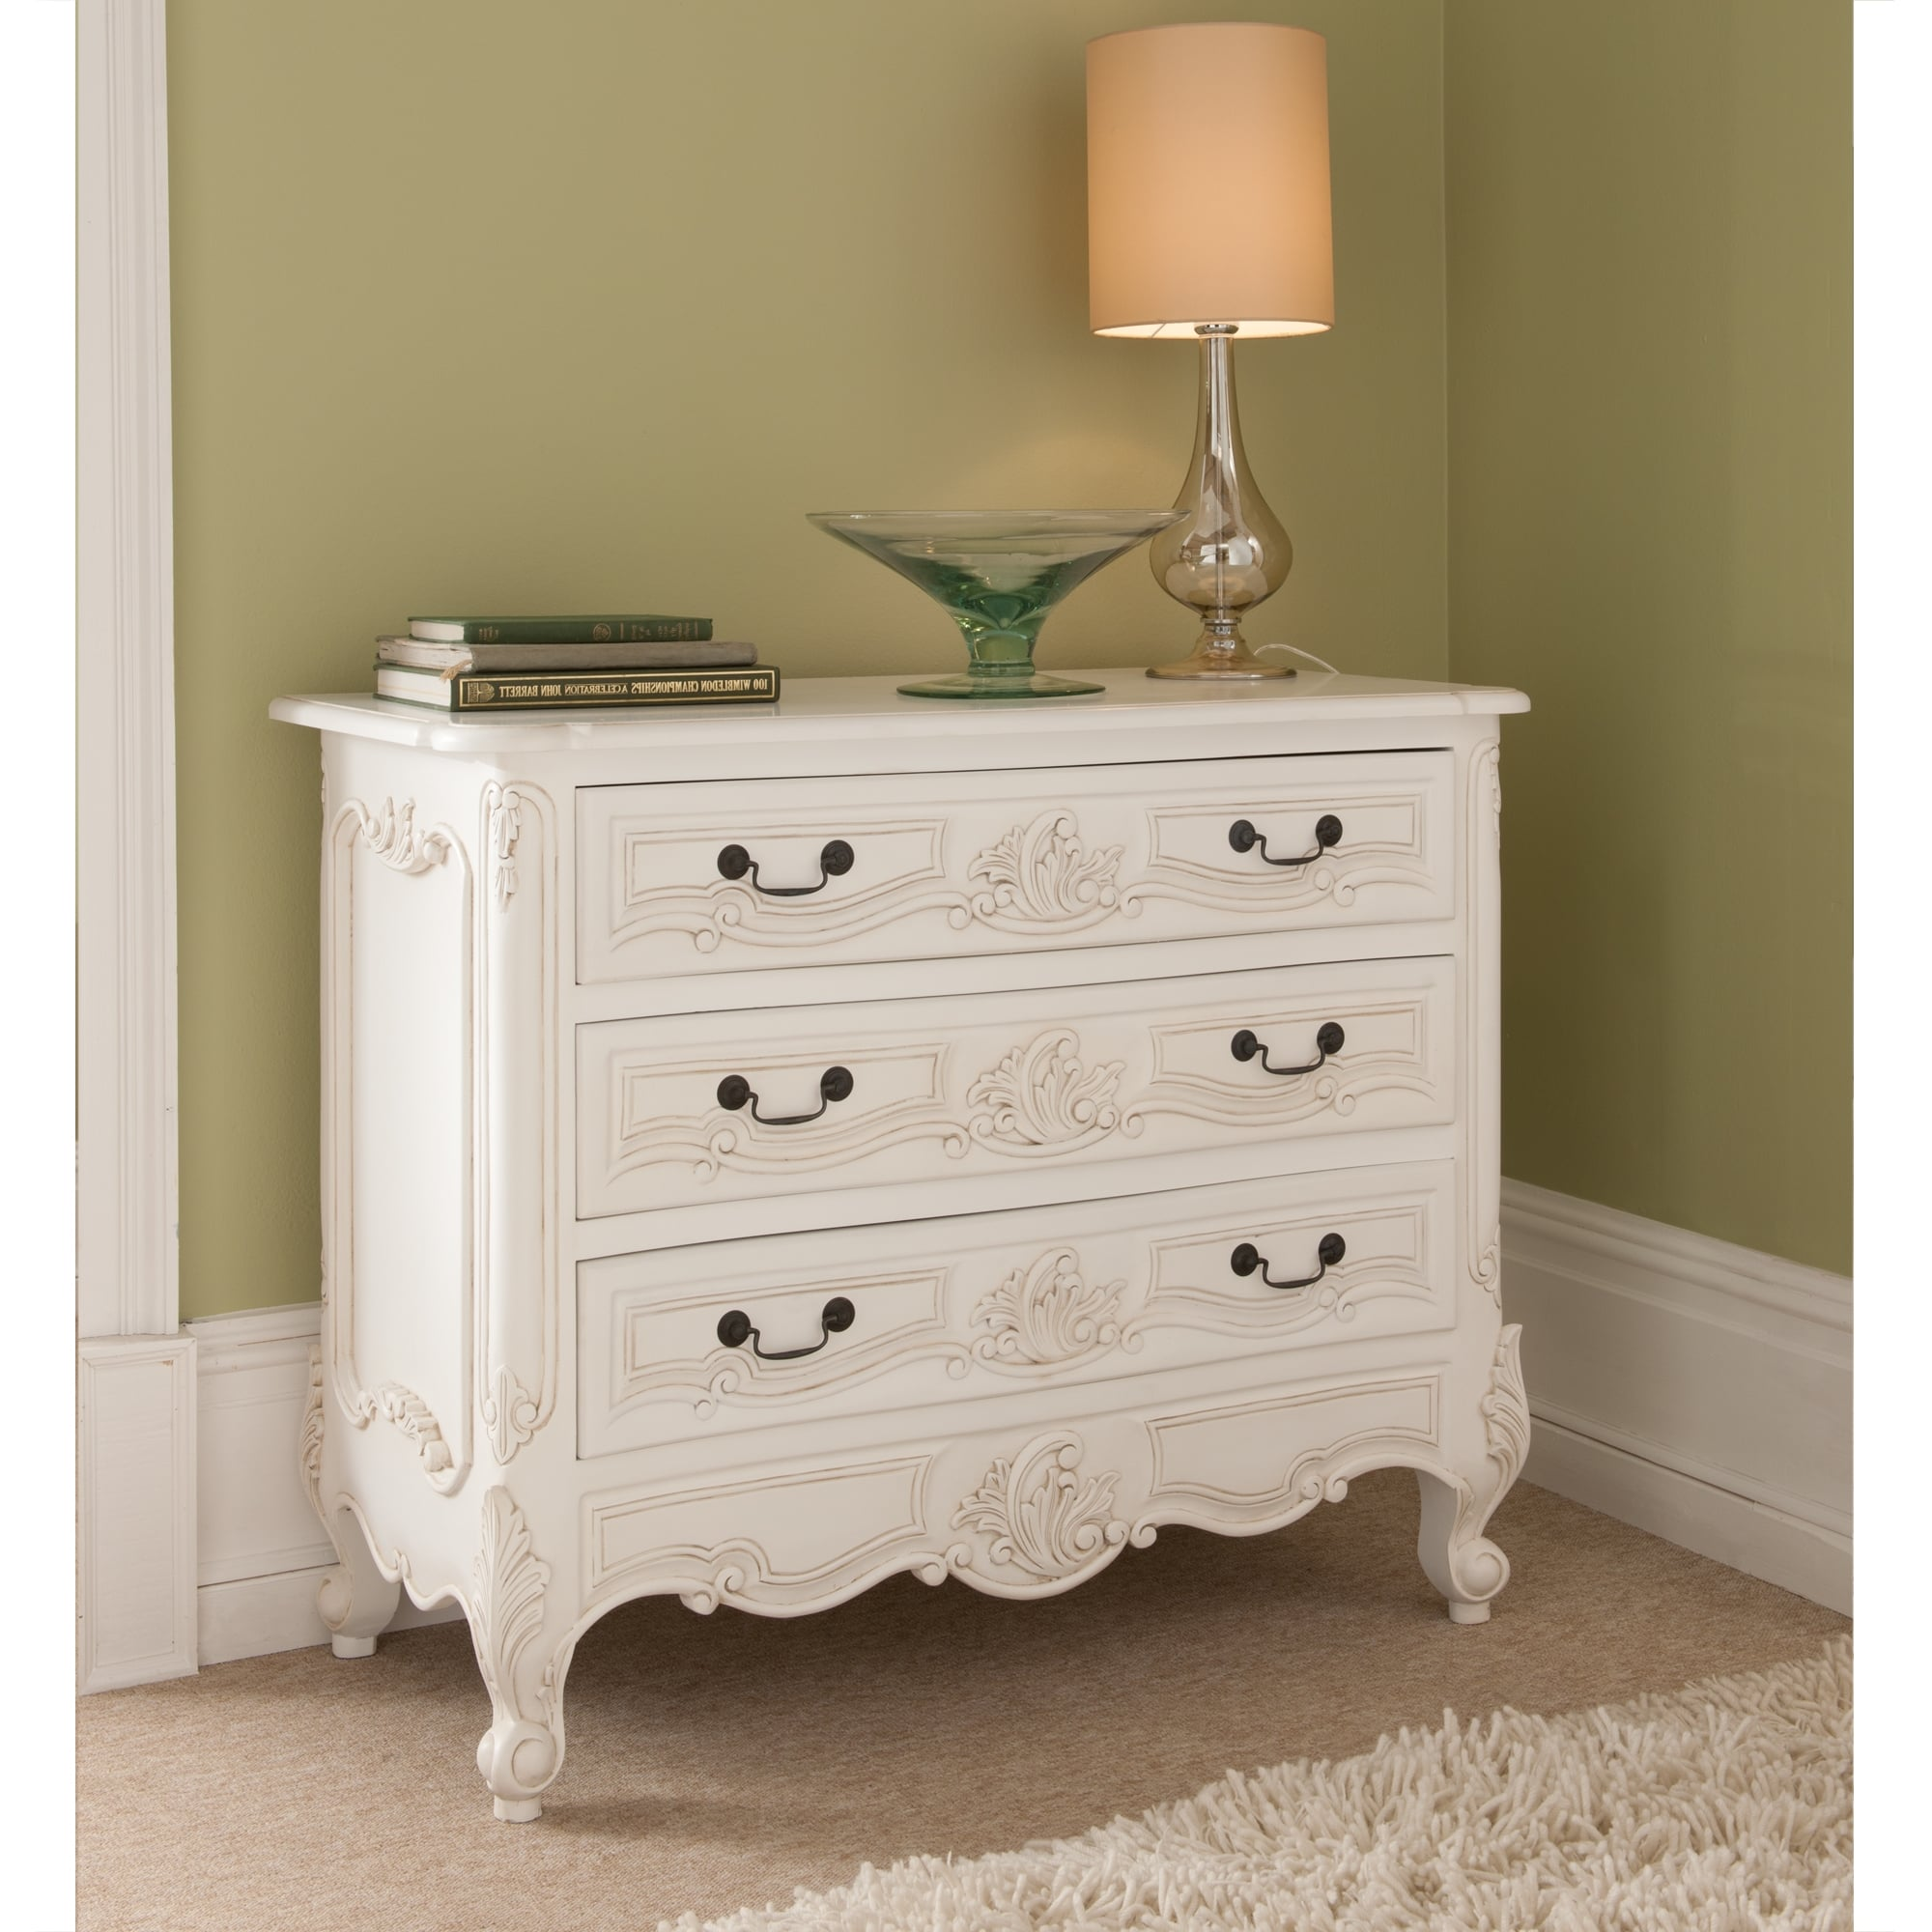 Rococo antique french chest of drawers french bedroom for Furniture 365 direct